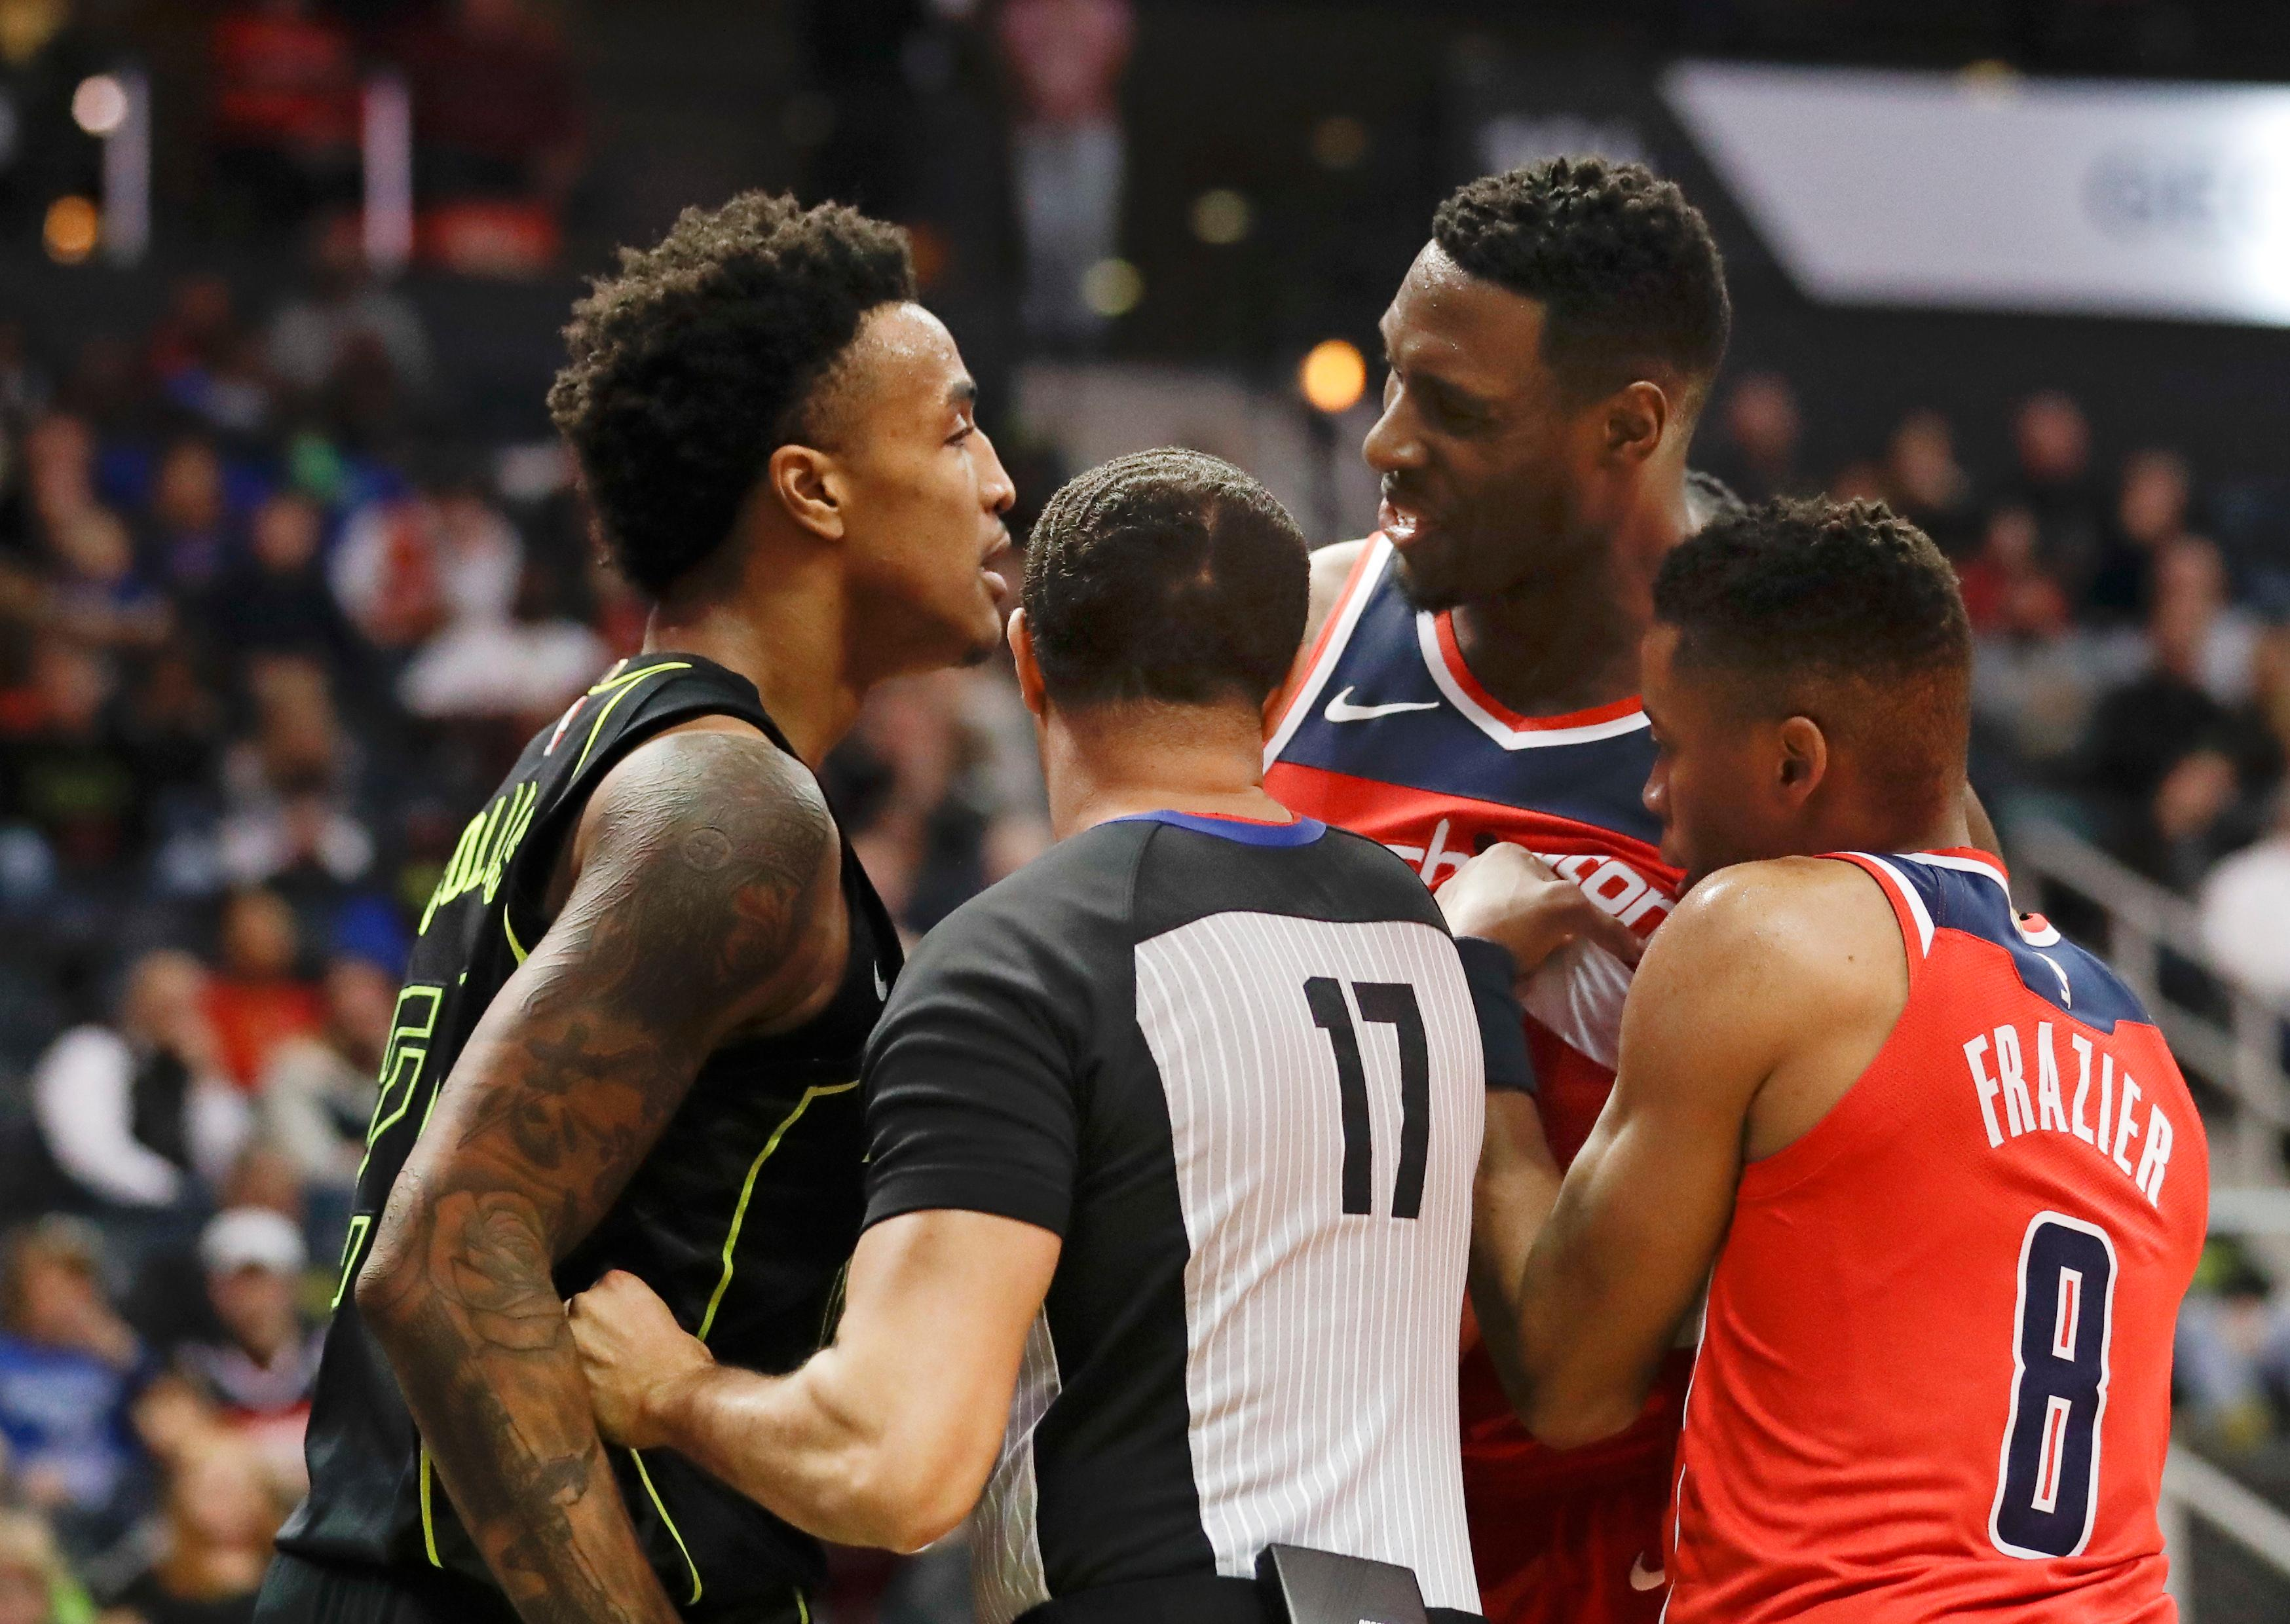 An official steps between Atlanta Hawks forward John Collins (20) and Washington Wizards center Ian Mahinmi (28) as tempers flare during the first half of an NBA basketball game Saturday, Jan. 27, 2018, in Atlanta. (AP Photo/John Bazemore)